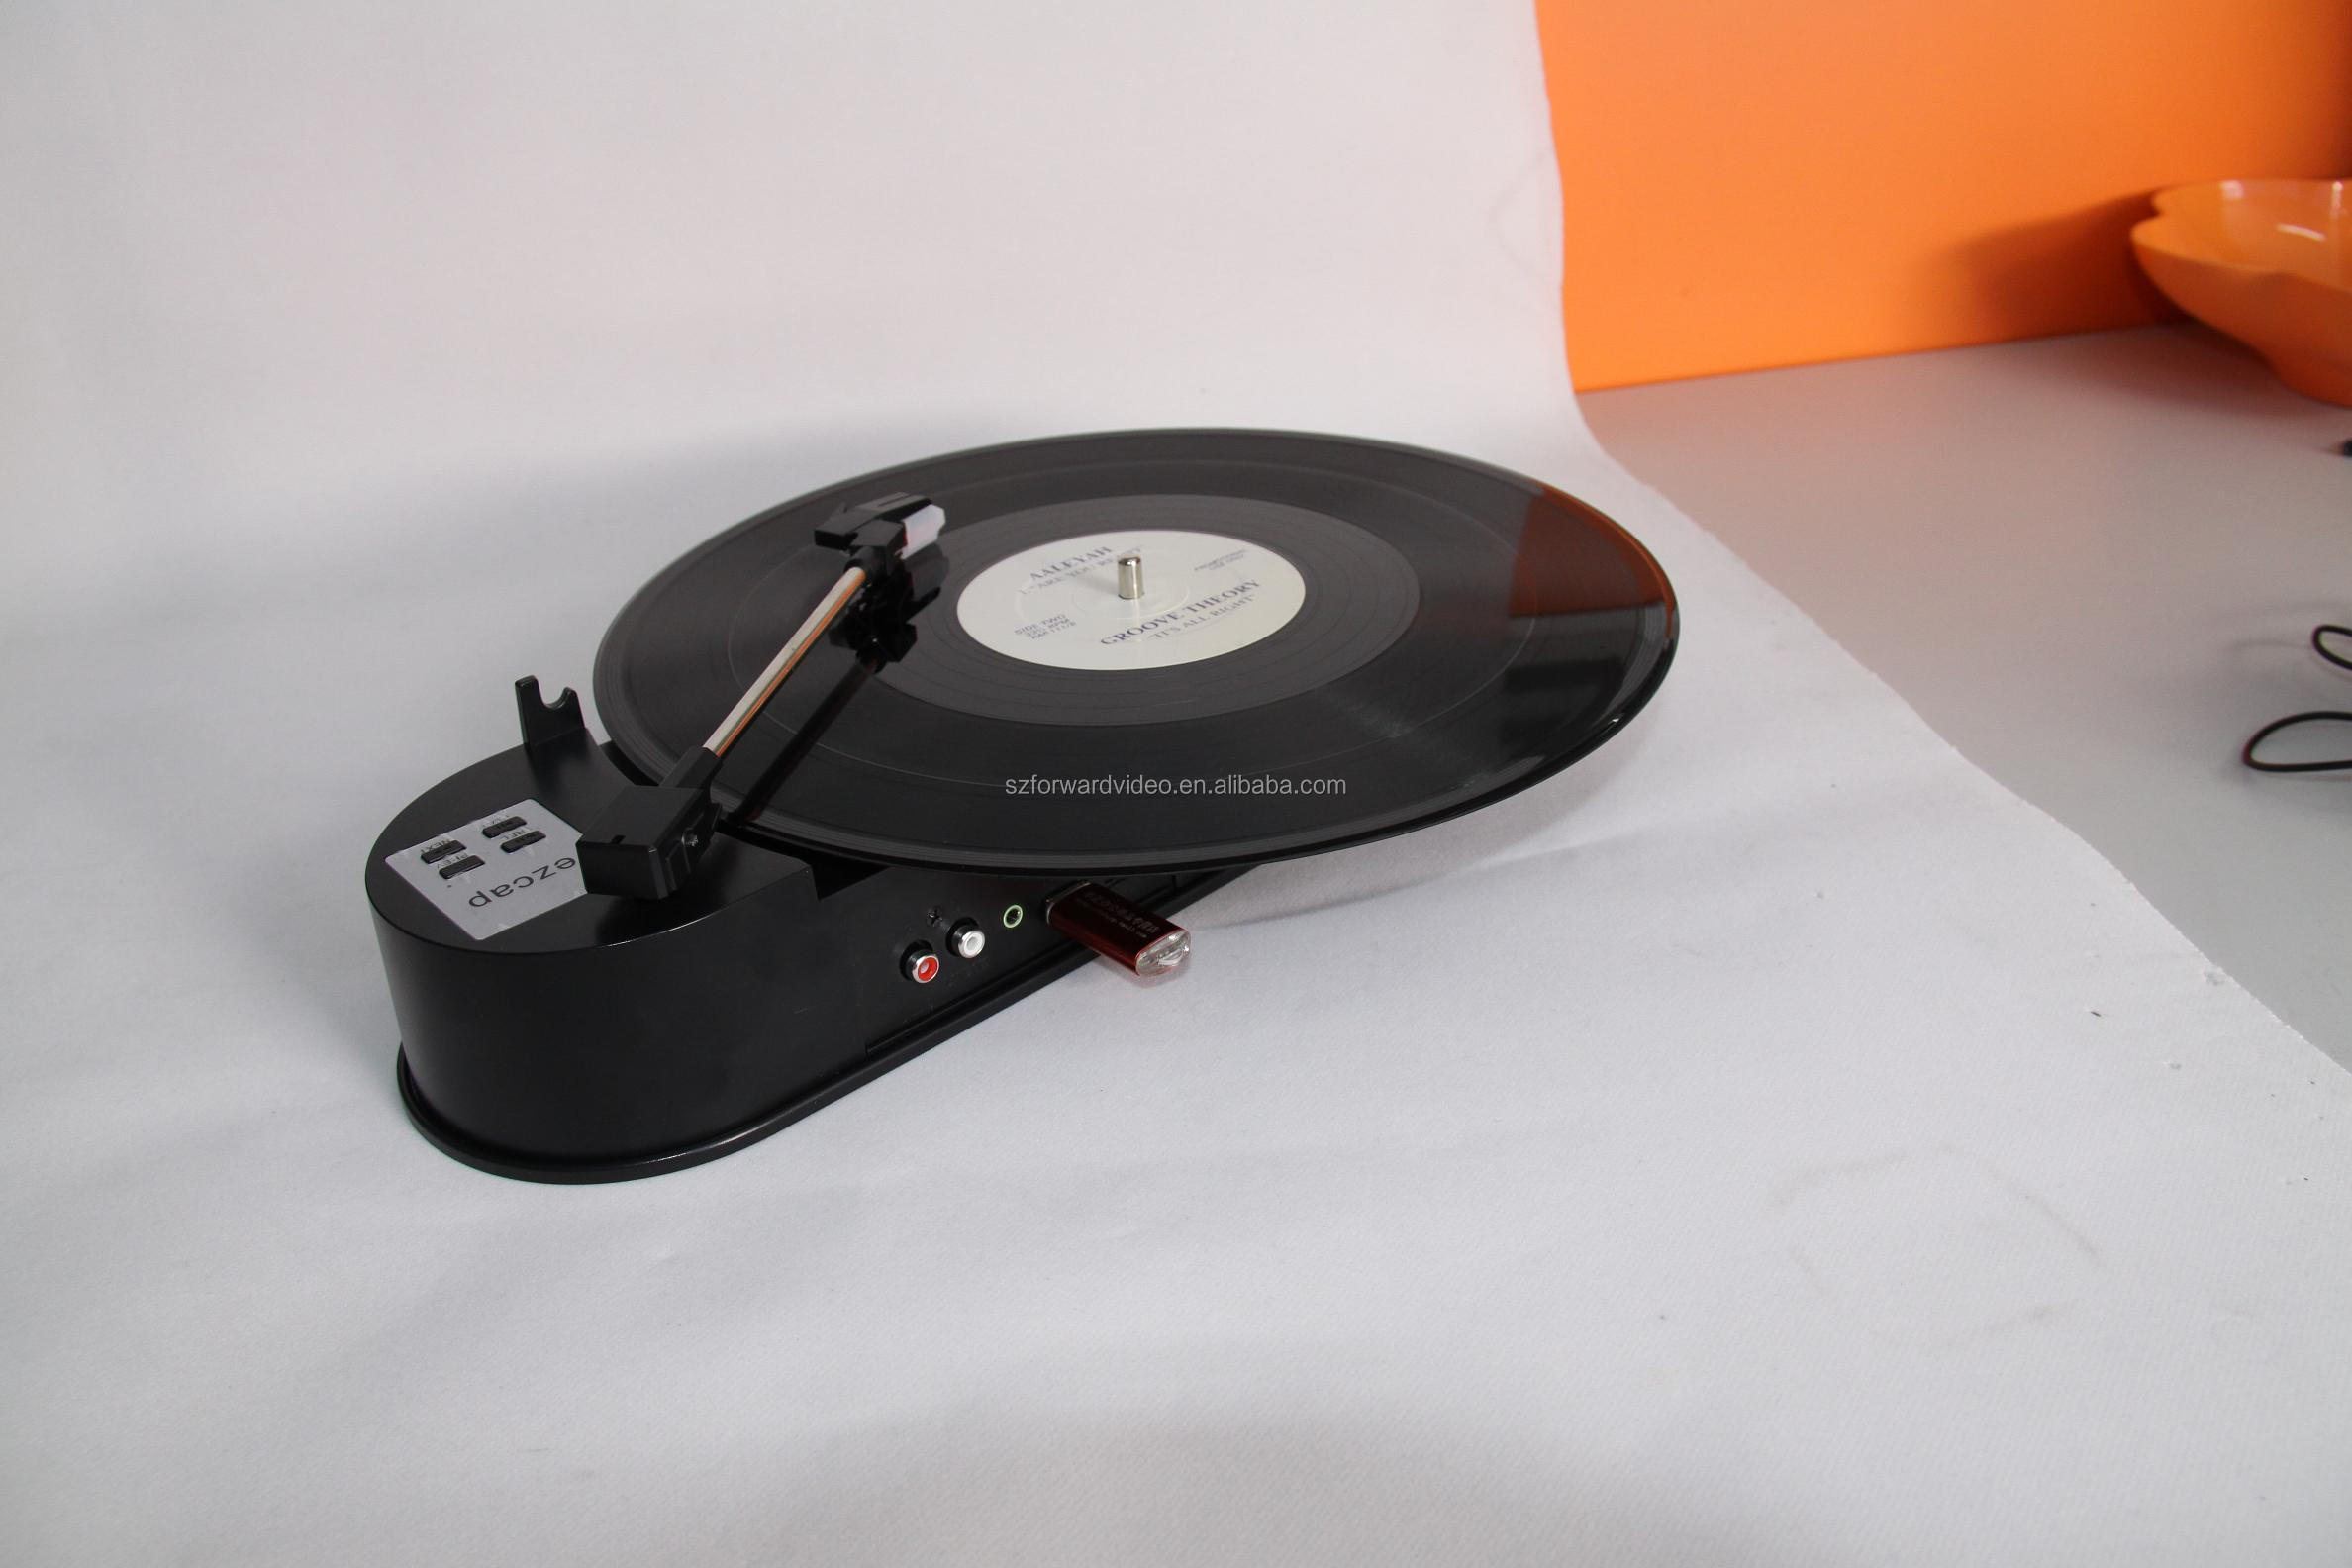 Turntable Converter,vinyl record to MP3,ezcap,audio converter,NO PC required-ezcap612